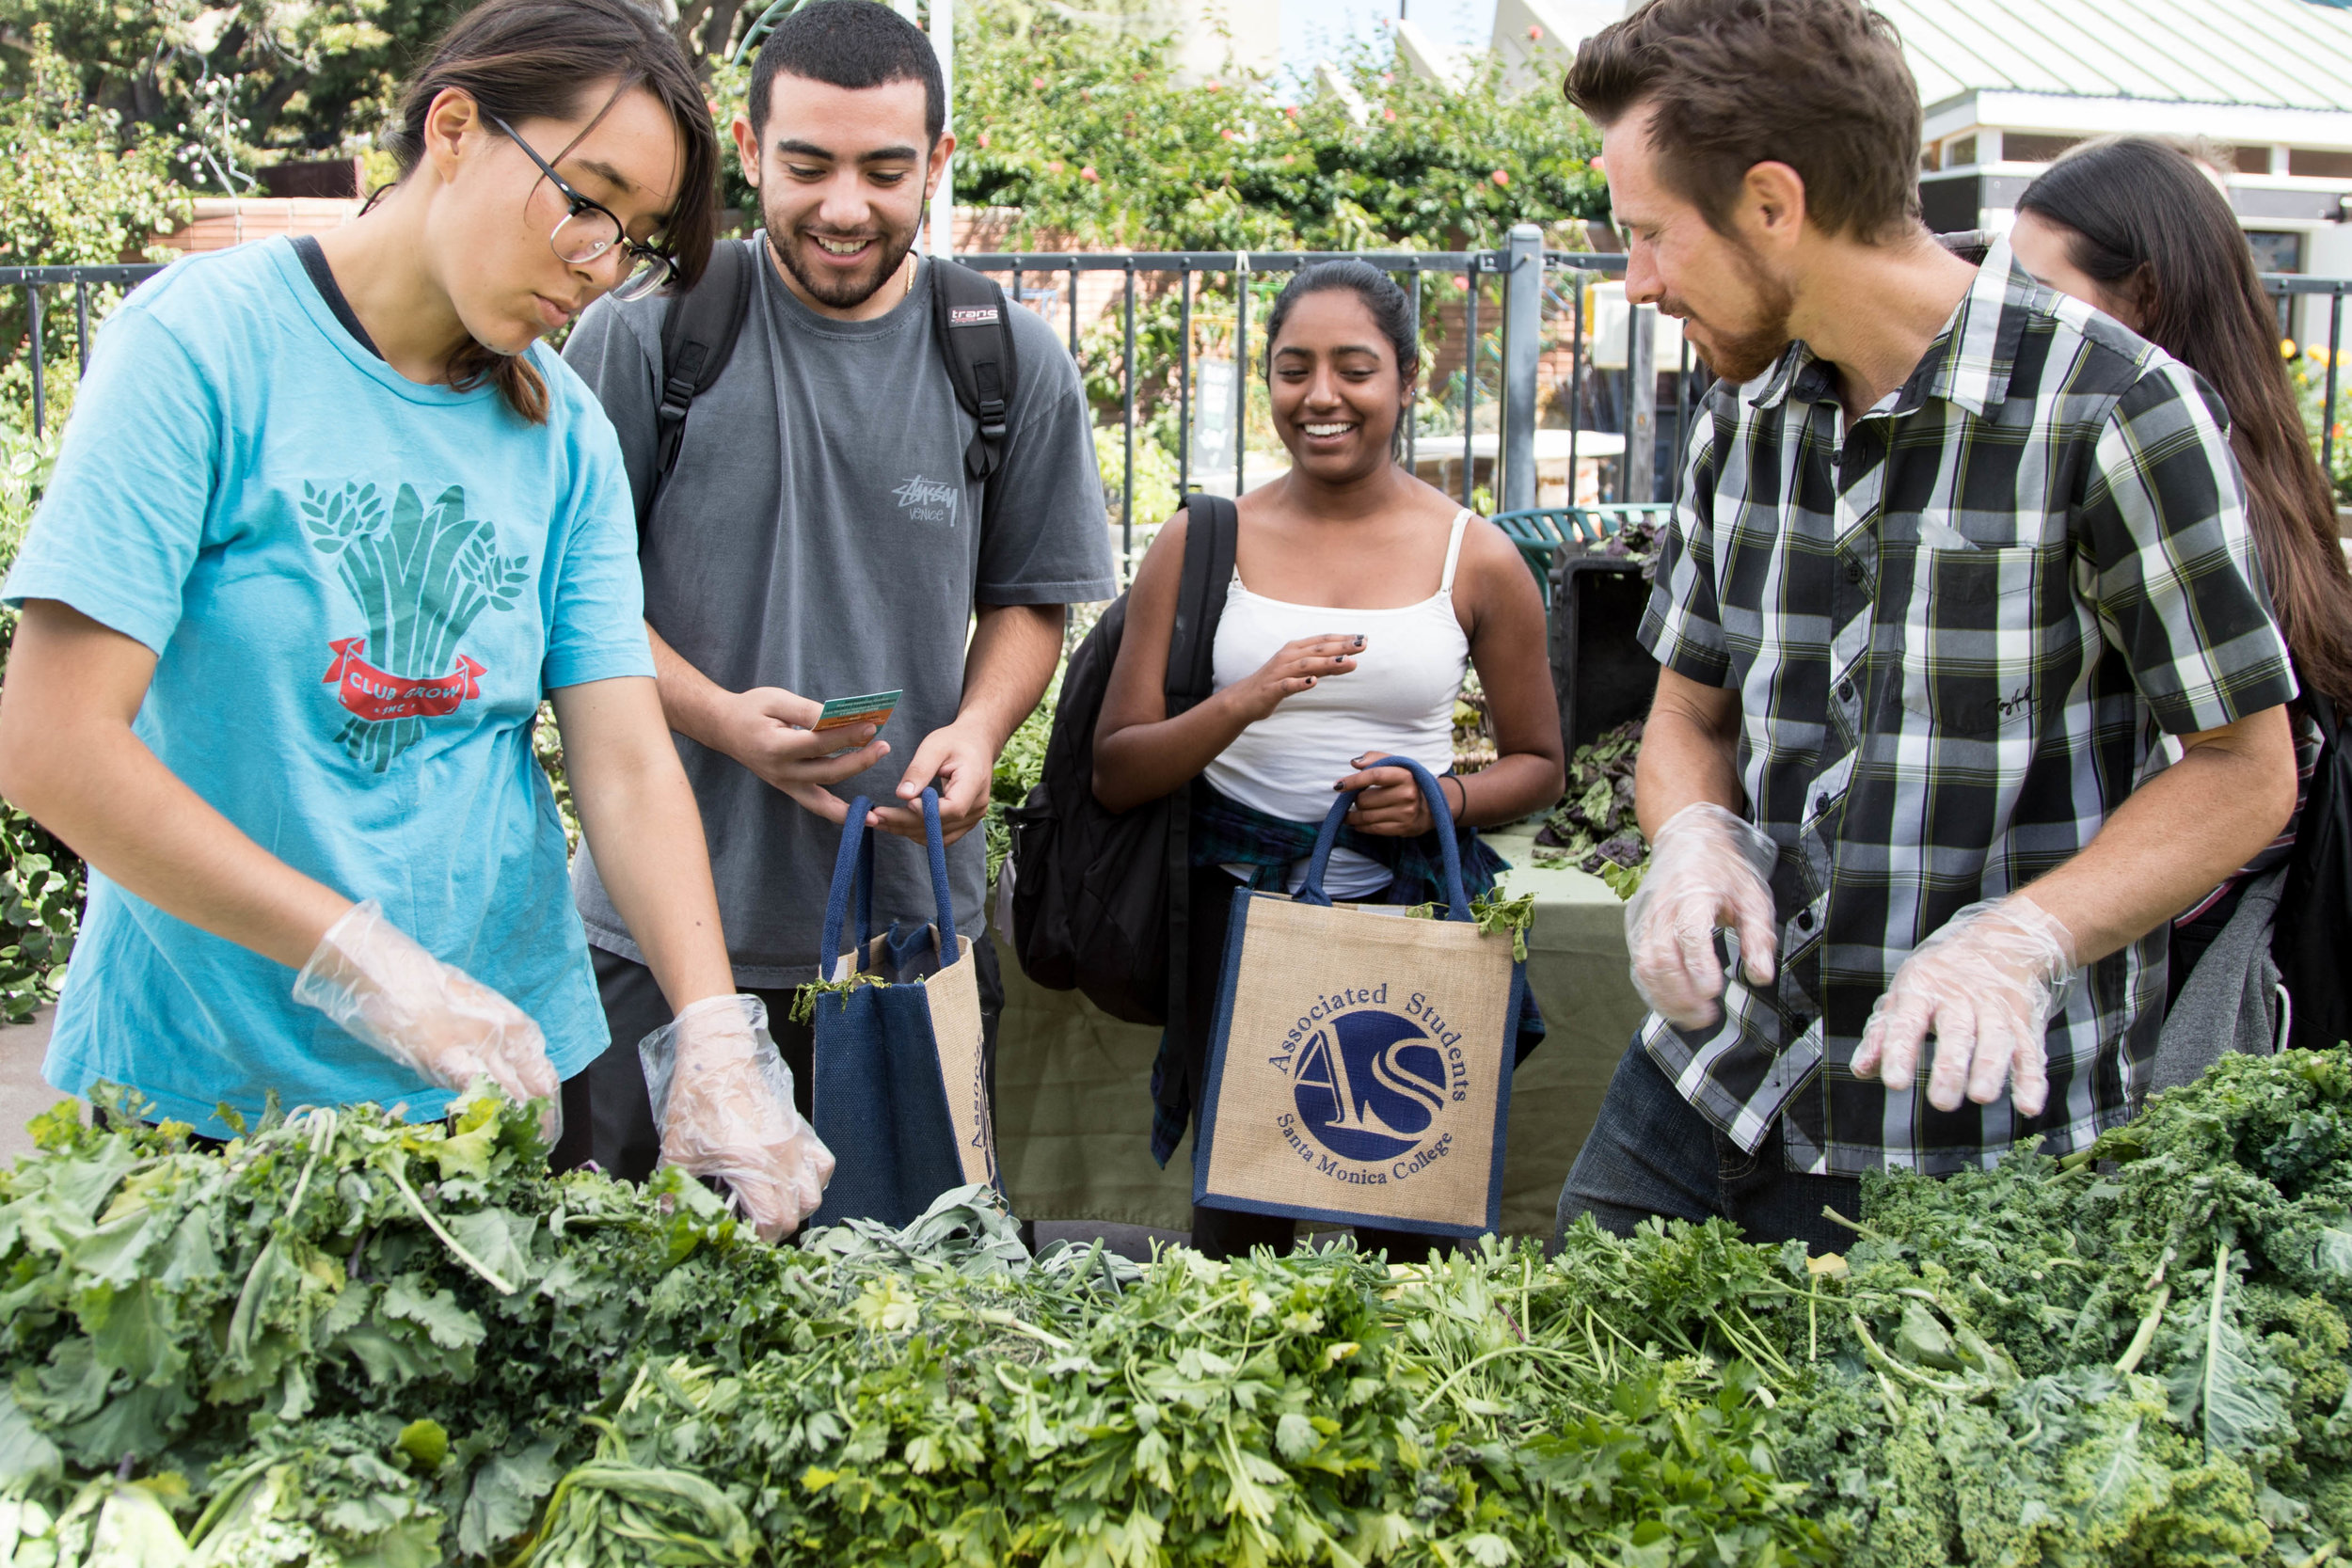 The Free Corsair Farmers Market provides students with vegetables and fruits from local Santa Monica farmers markets. On October 16, 2017 during Sustainabilty week at Santa Monica College, the market expanded their usual  smaller scale set-up that's usually open every Wednesday in Santa Monica, Calif. (Photo: Jazz Shademan)